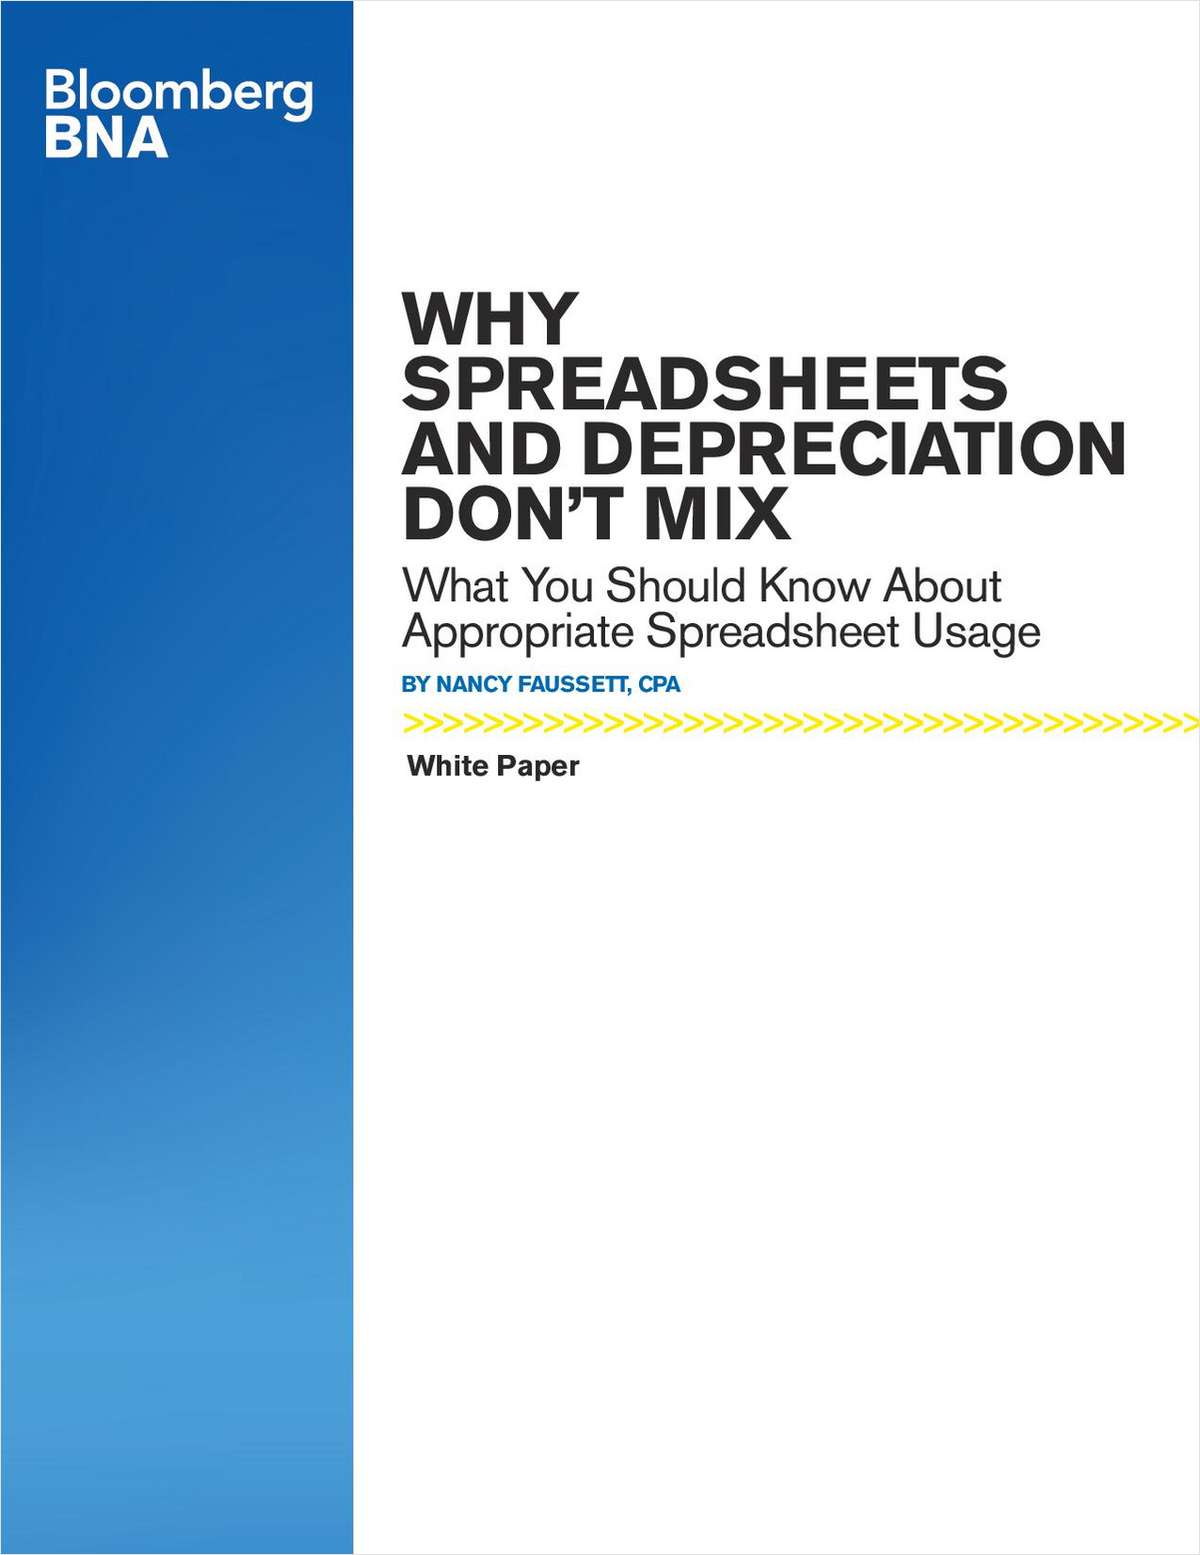 Why Spreadsheets and Deprecation Don't Mix